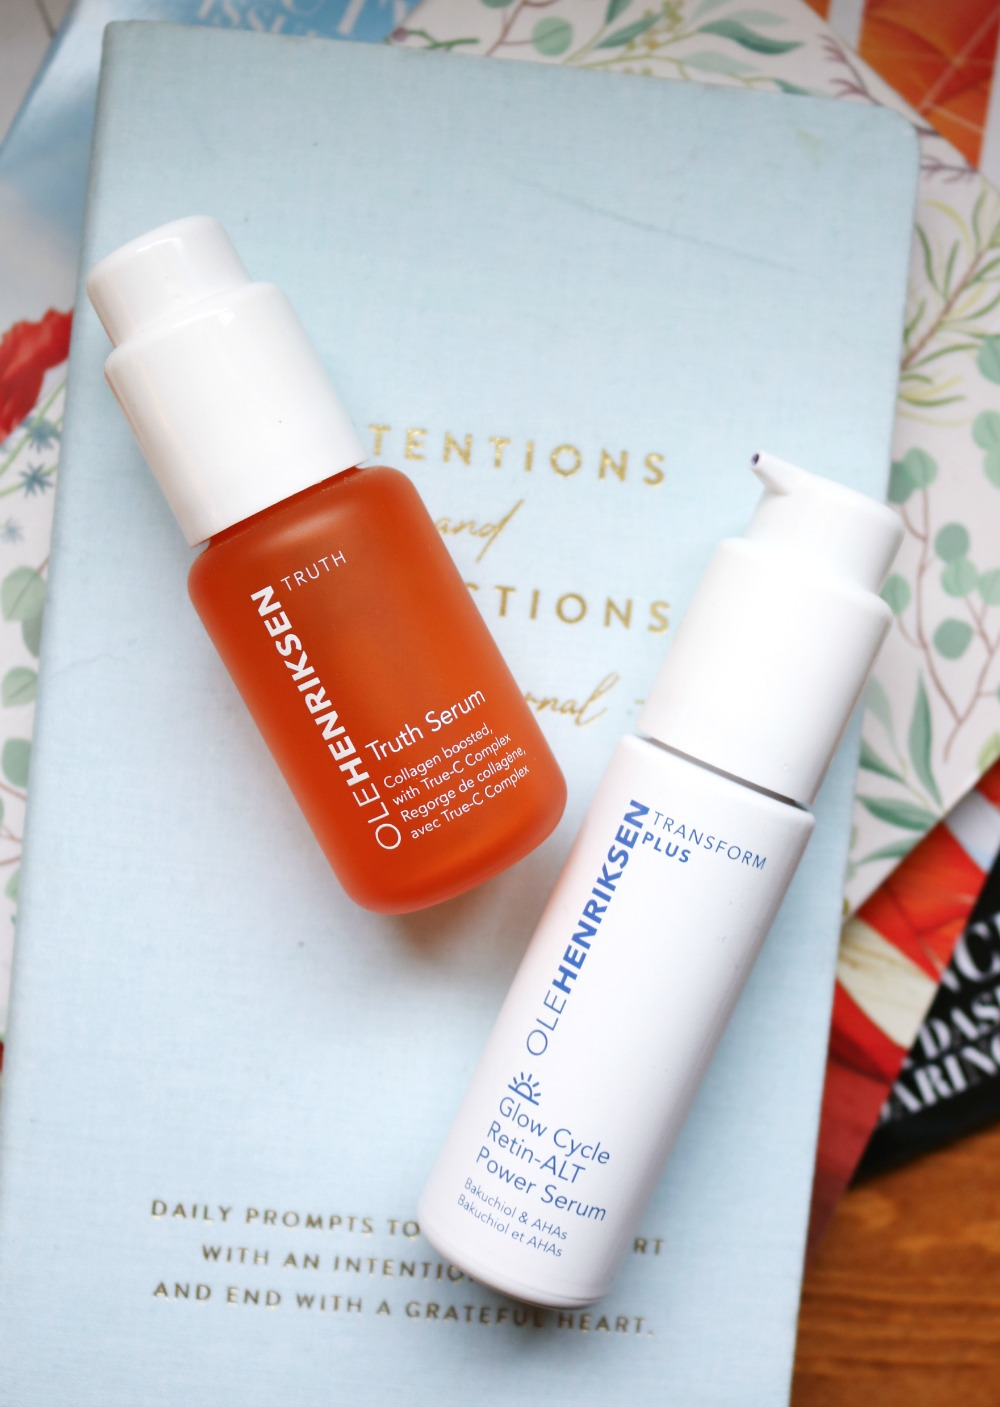 Ole Henriksen Serum Comparison I Truth Vitamin C Serum v Glow Cycle Retin-ALT Power Serum